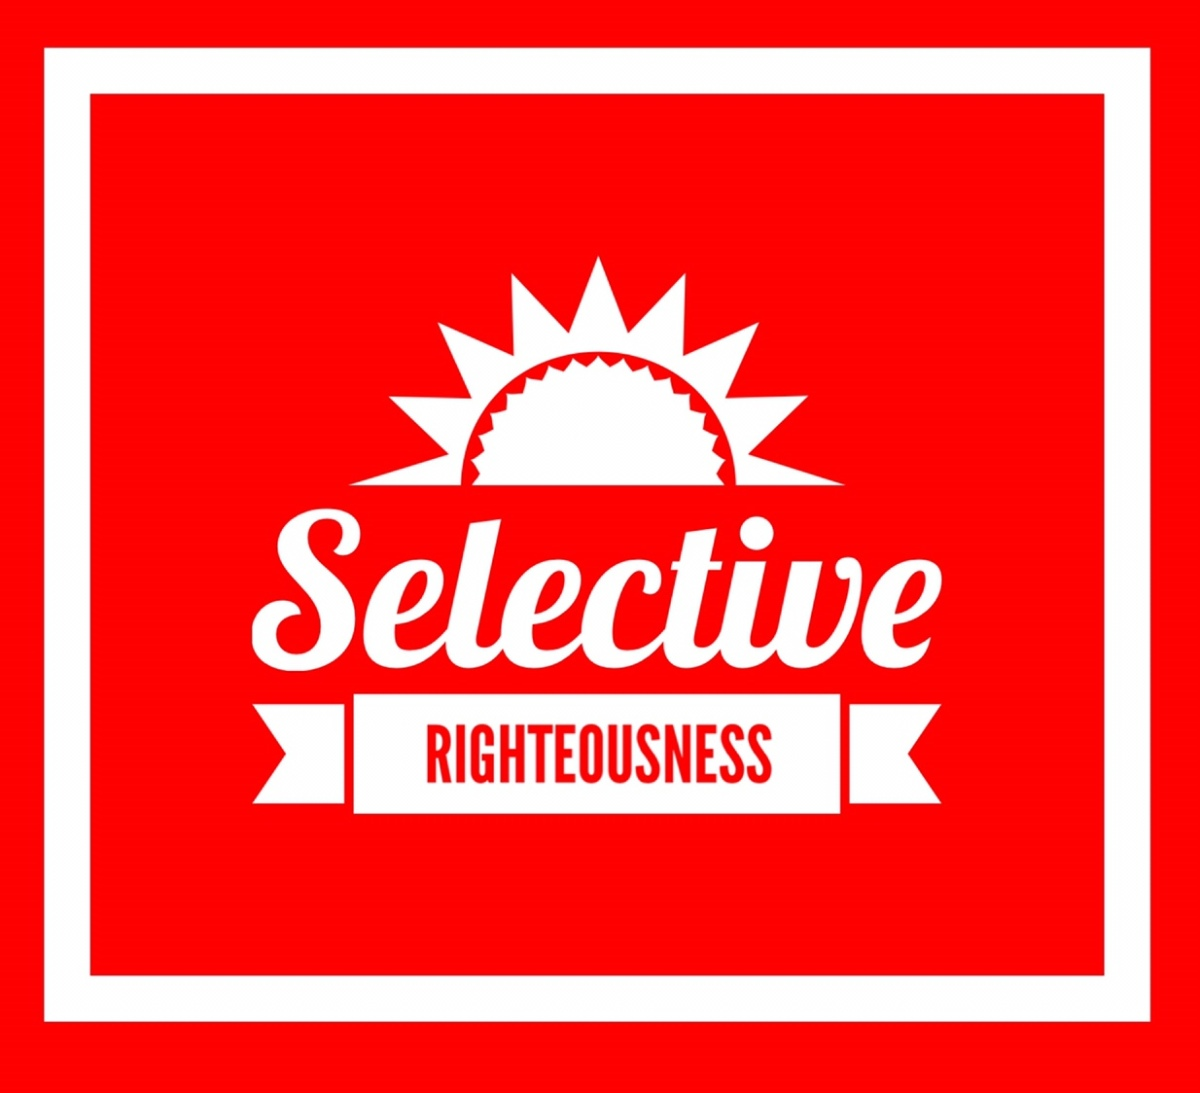 Selective Righteousness